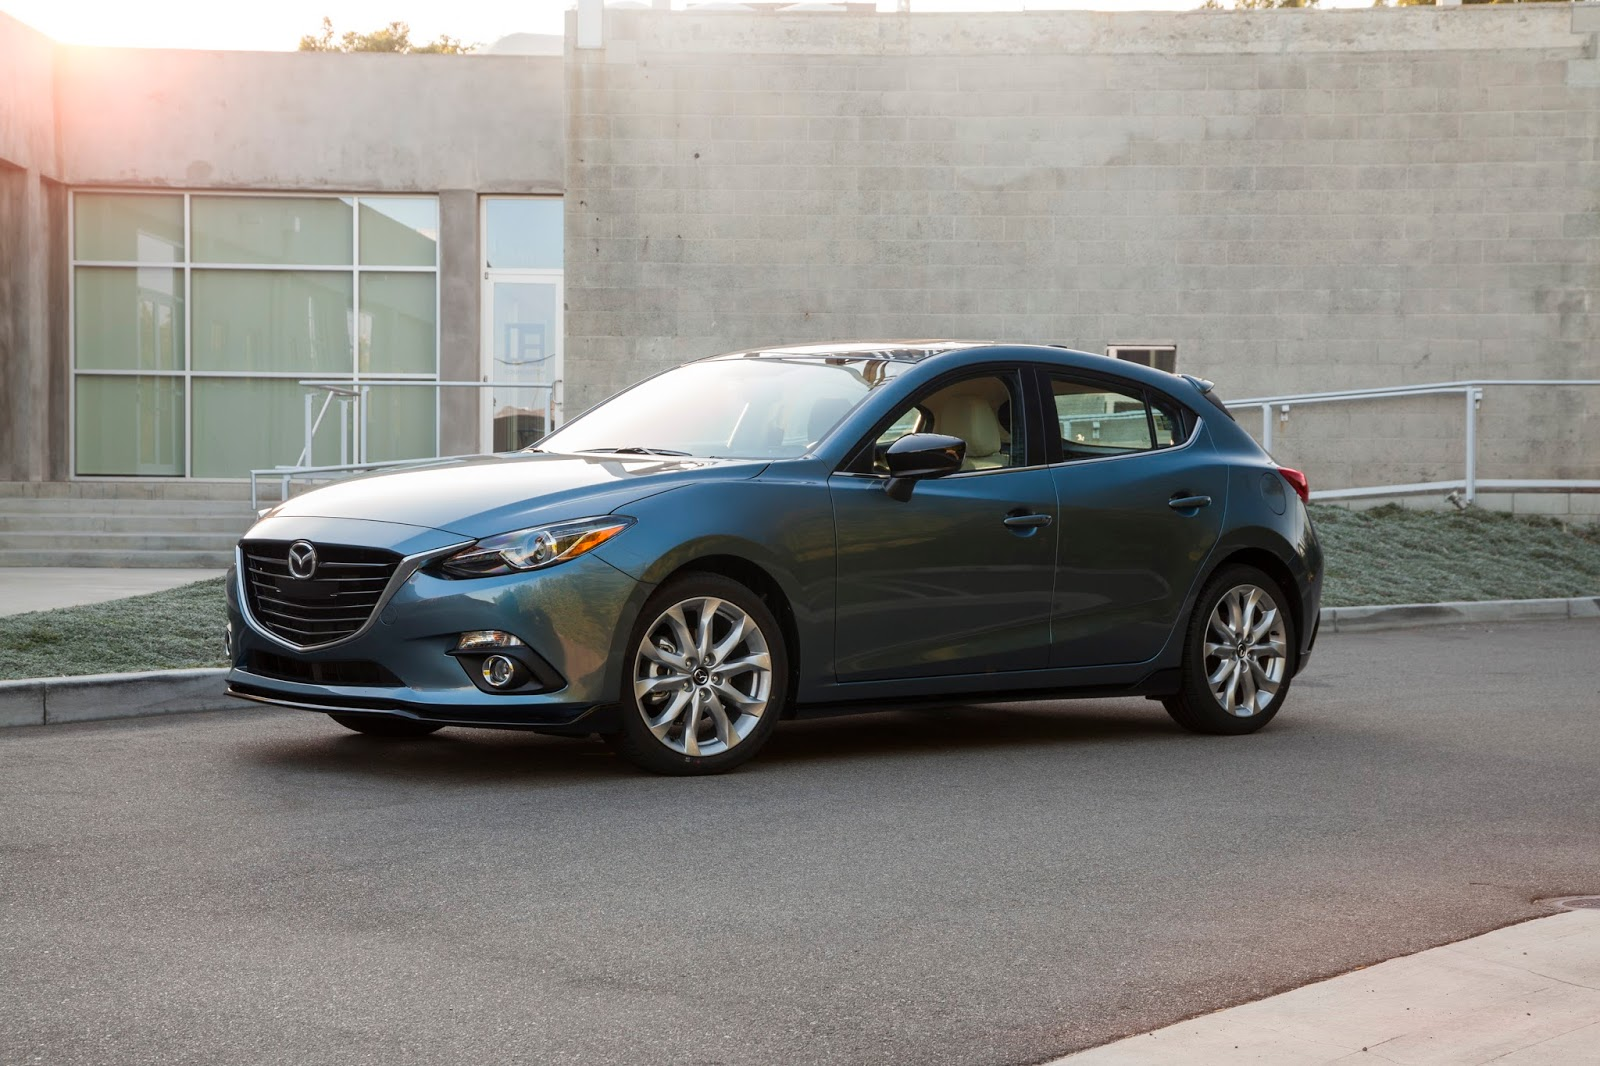 small resolution of why am i doing a writeup on a 2015 mazda 3 oil and filter change on a blog focused on electric bikes solar and small electronics